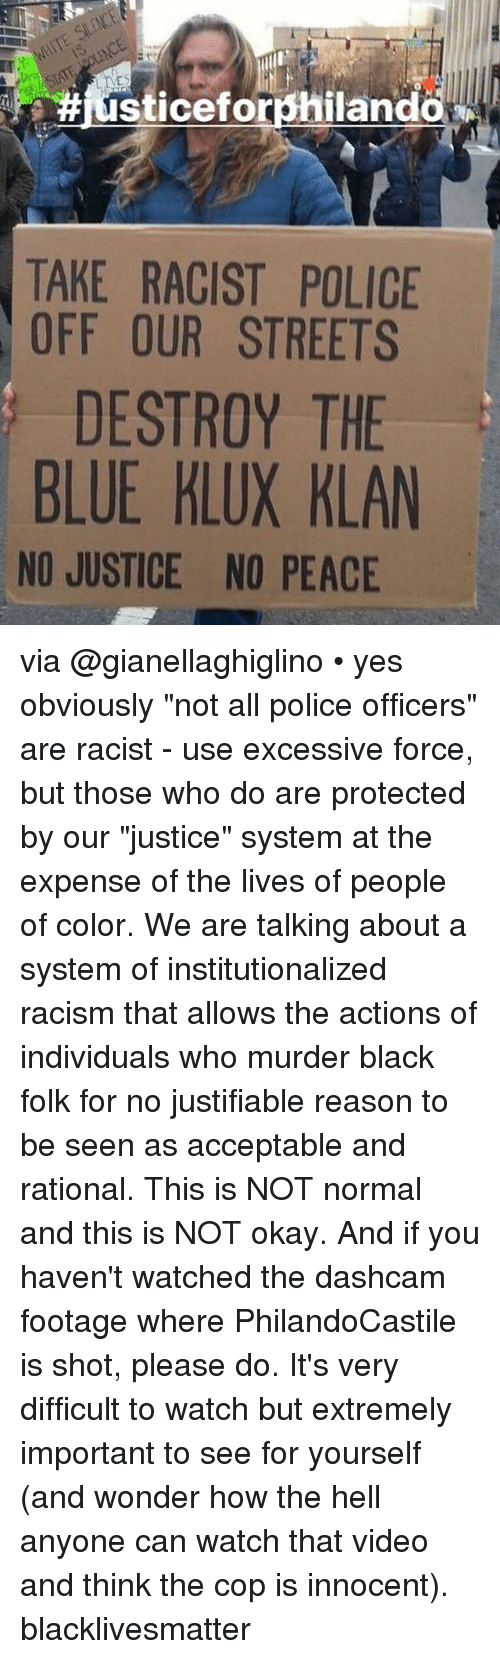 "Black Lives Matter, Memes, and Police: IT  #iusticeforphiland  TAKE RACIST POLICE  OFF OUR STREETS  DESTROY THE  BLUE KLUX KLAN  NO JUSTICE NO PEACE via @gianellaghiglino • yes obviously ""not all police officers"" are racist - use excessive force, but those who do are protected by our ""justice"" system at the expense of the lives of people of color. We are talking about a system of institutionalized racism that allows the actions of individuals who murder black folk for no justifiable reason to be seen as acceptable and rational. This is NOT normal and this is NOT okay. And if you haven't watched the dashcam footage where PhilandoCastile is shot, please do. It's very difficult to watch but extremely important to see for yourself (and wonder how the hell anyone can watch that video and think the cop is innocent). blacklivesmatter"